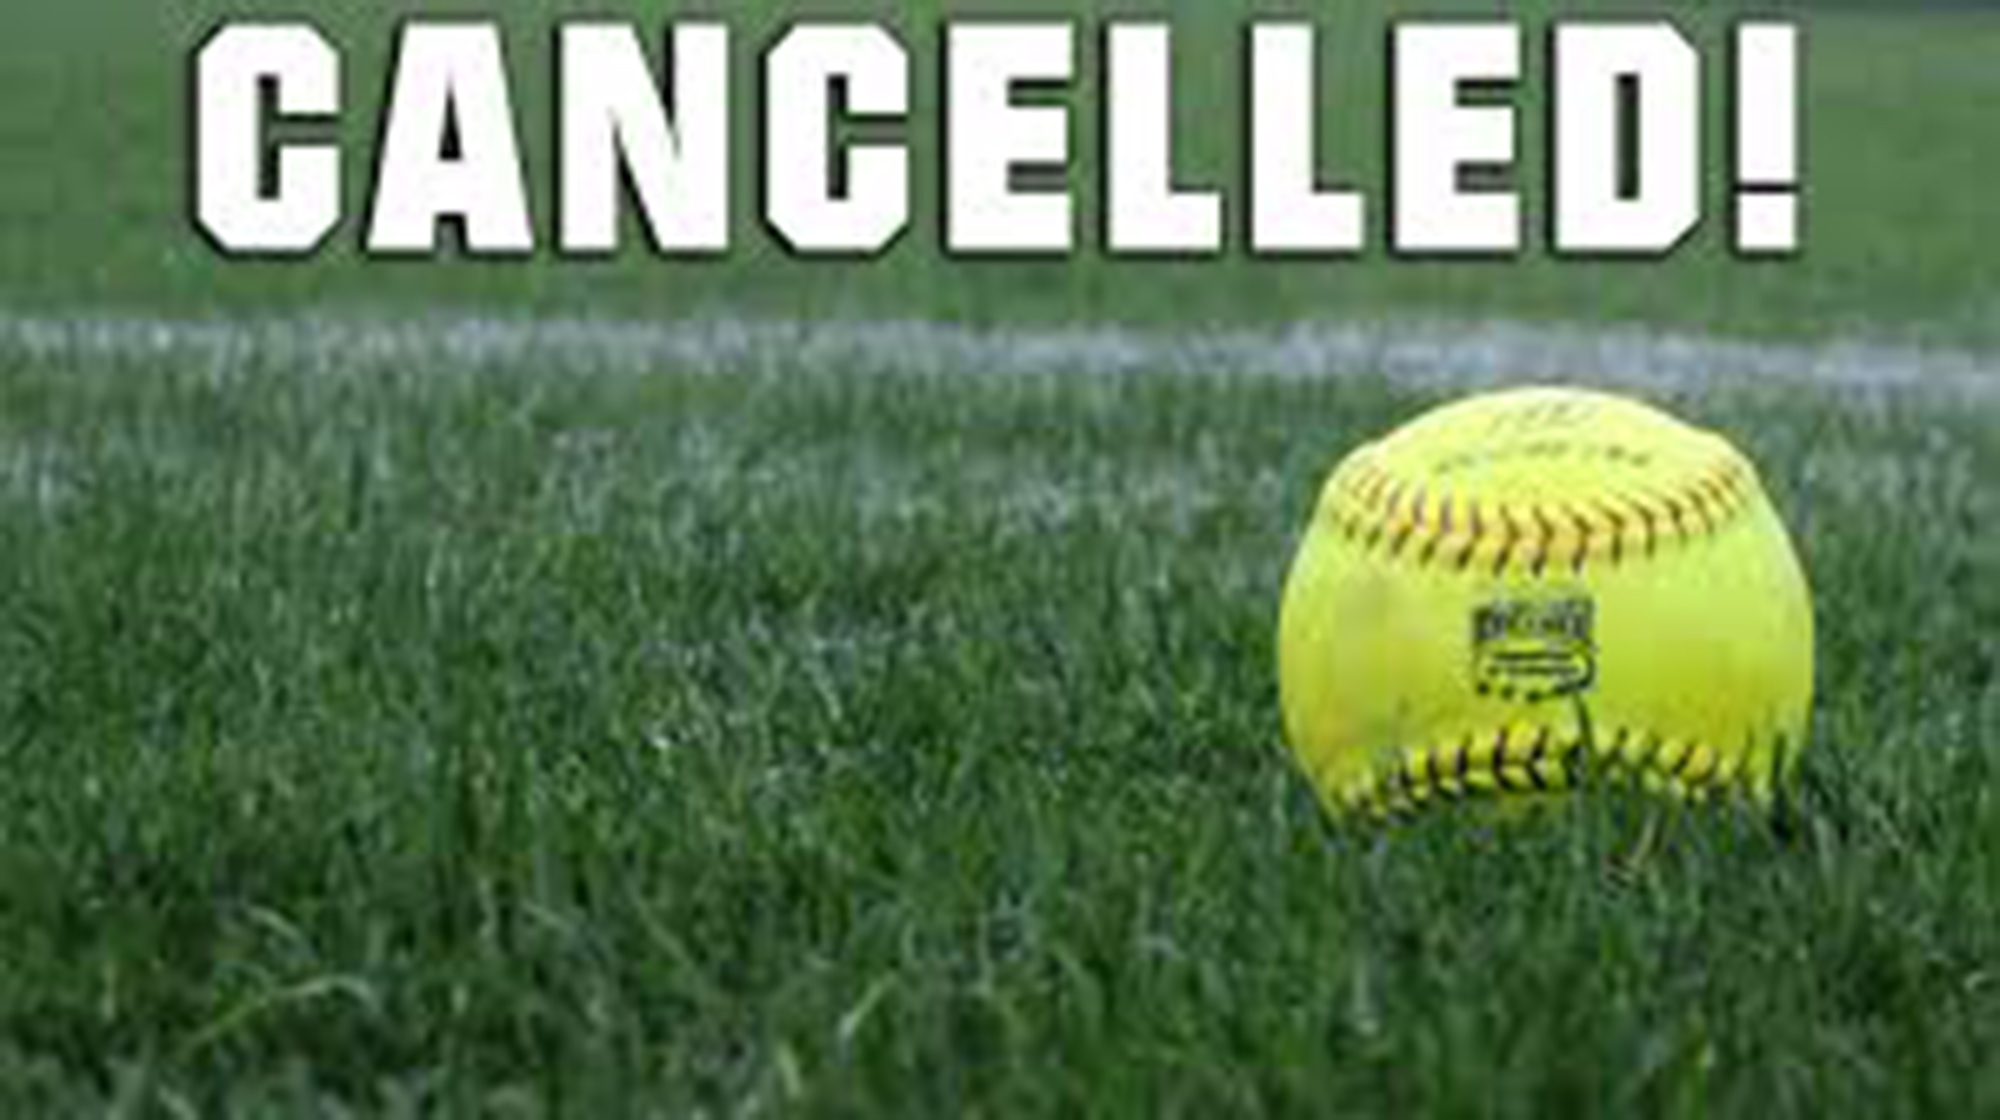 Image result for softball game cancelled image